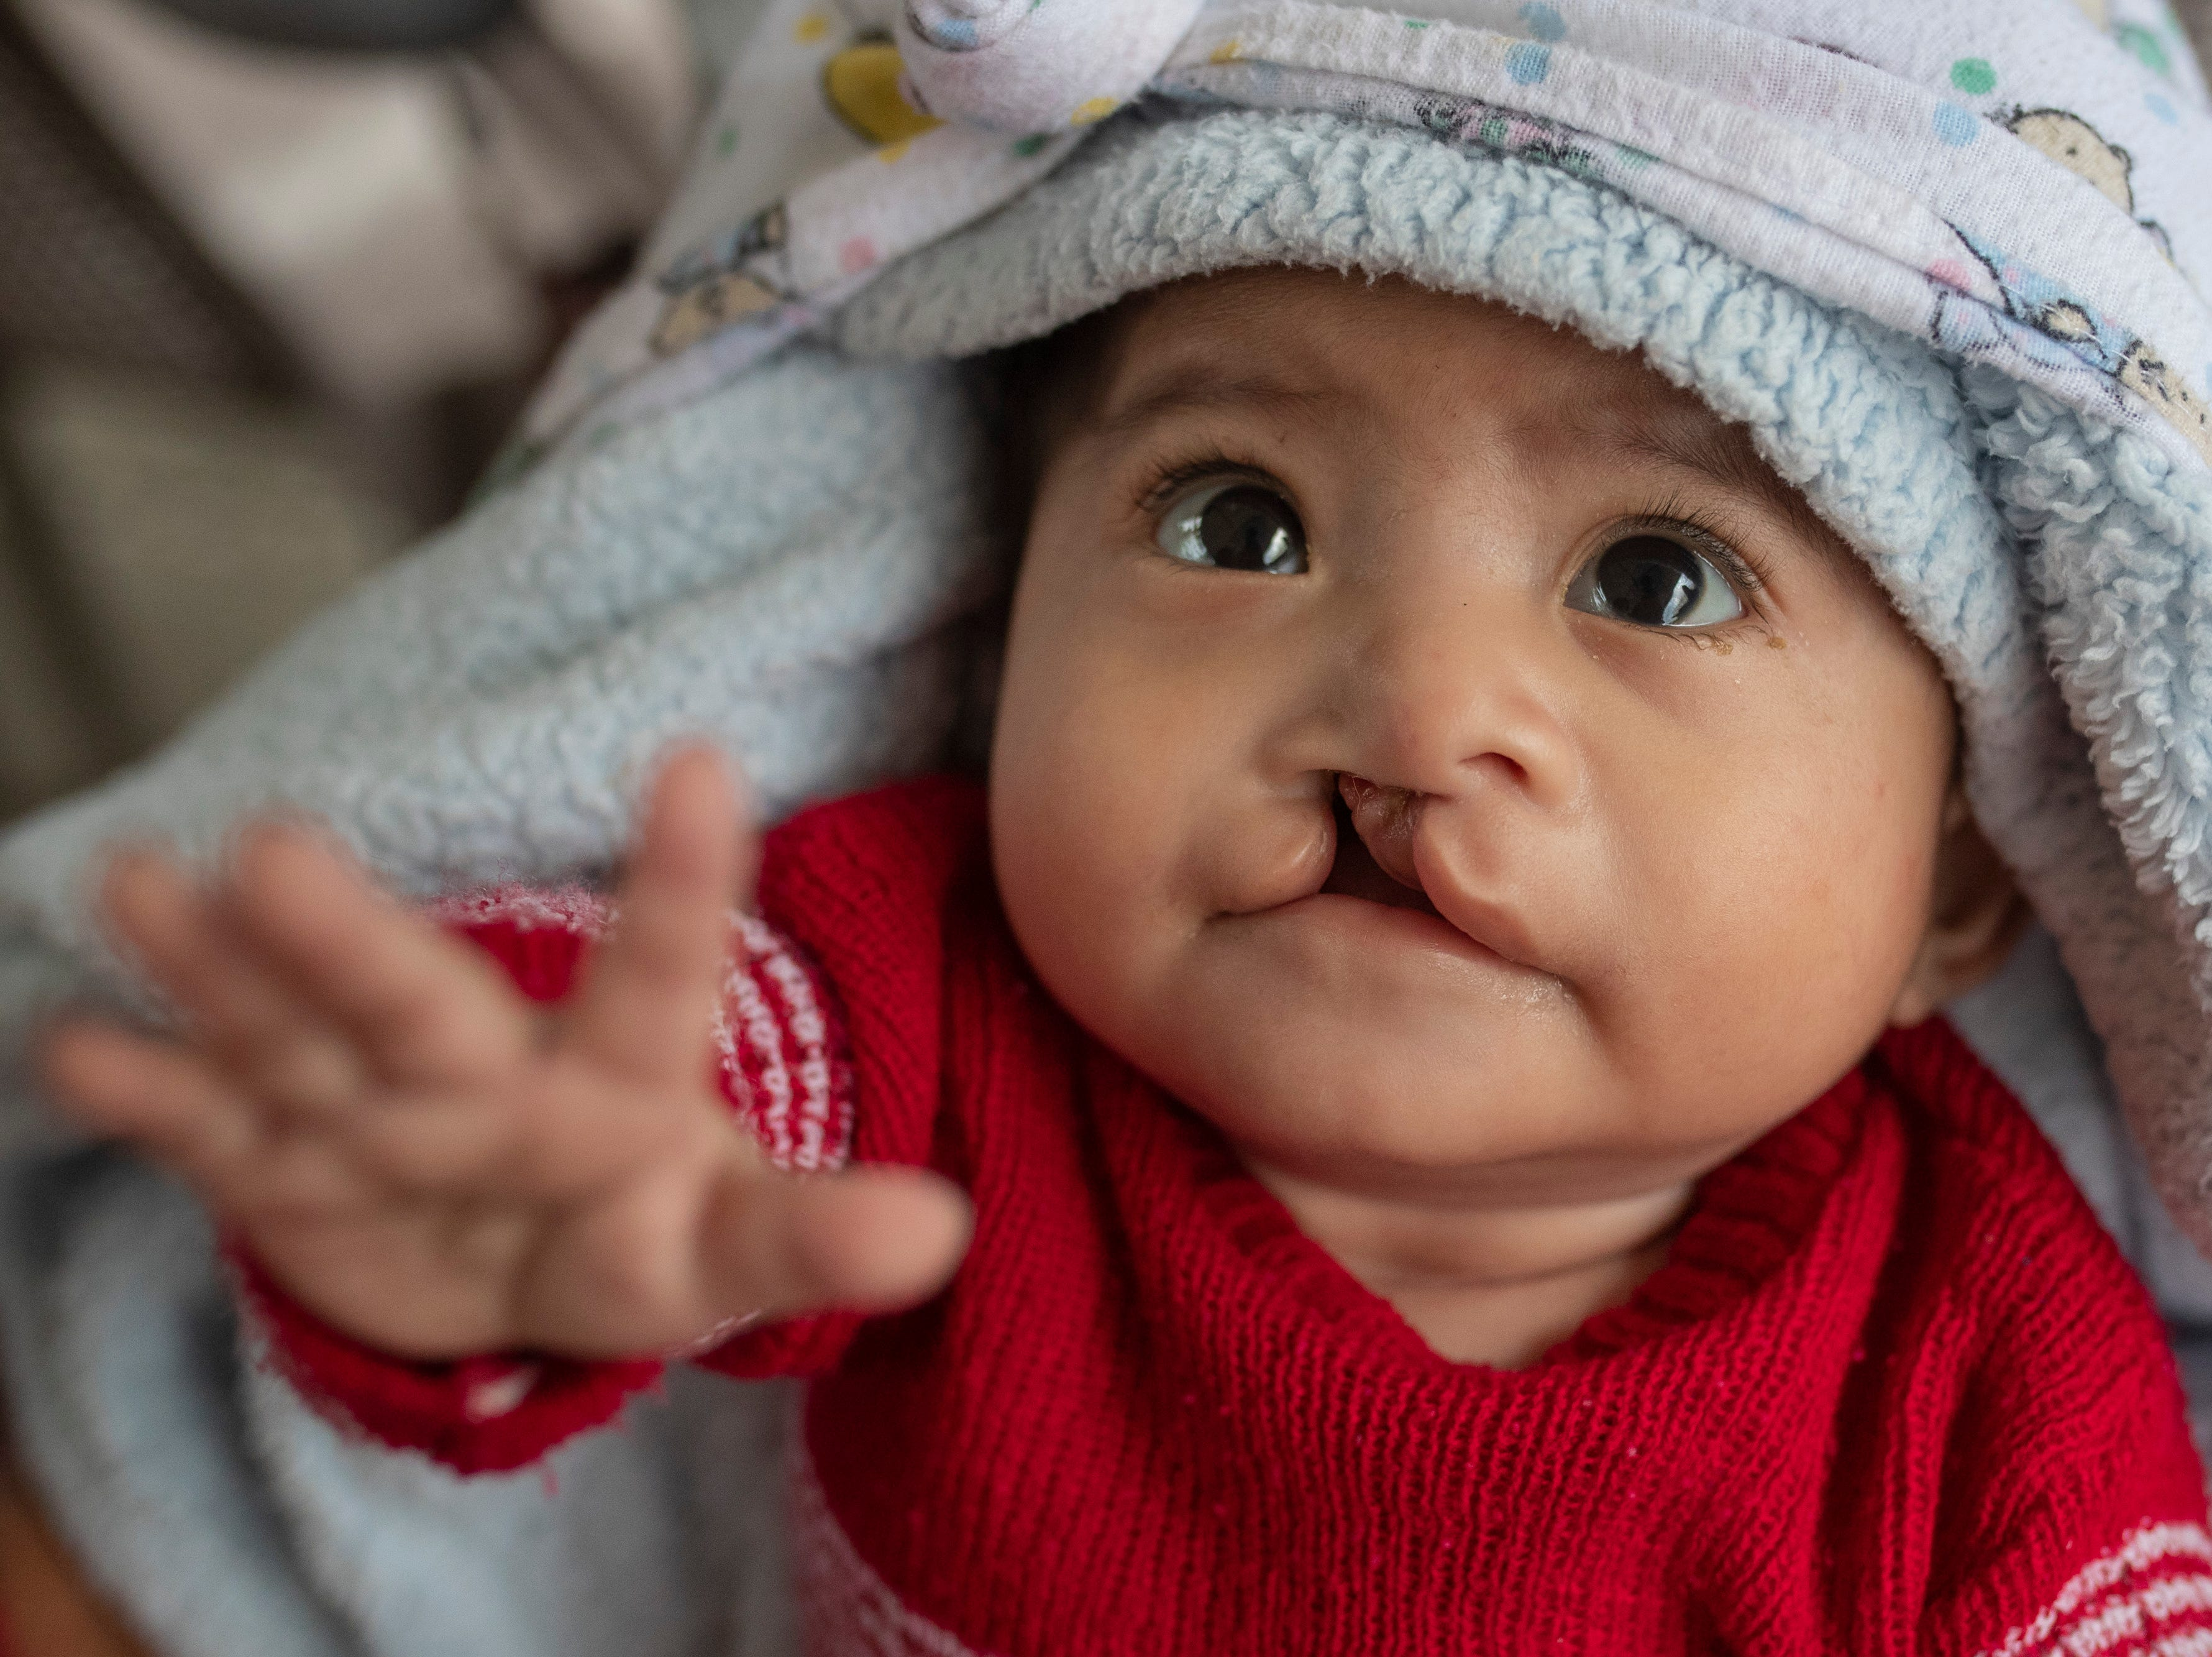 Oberleen Coc Ax, nine months, was born with a cleft lip and was scheduled to have it repaired by COTA'S University of Kentucky plastic surgeon Dr. James Liau. Jan. 20, 2019